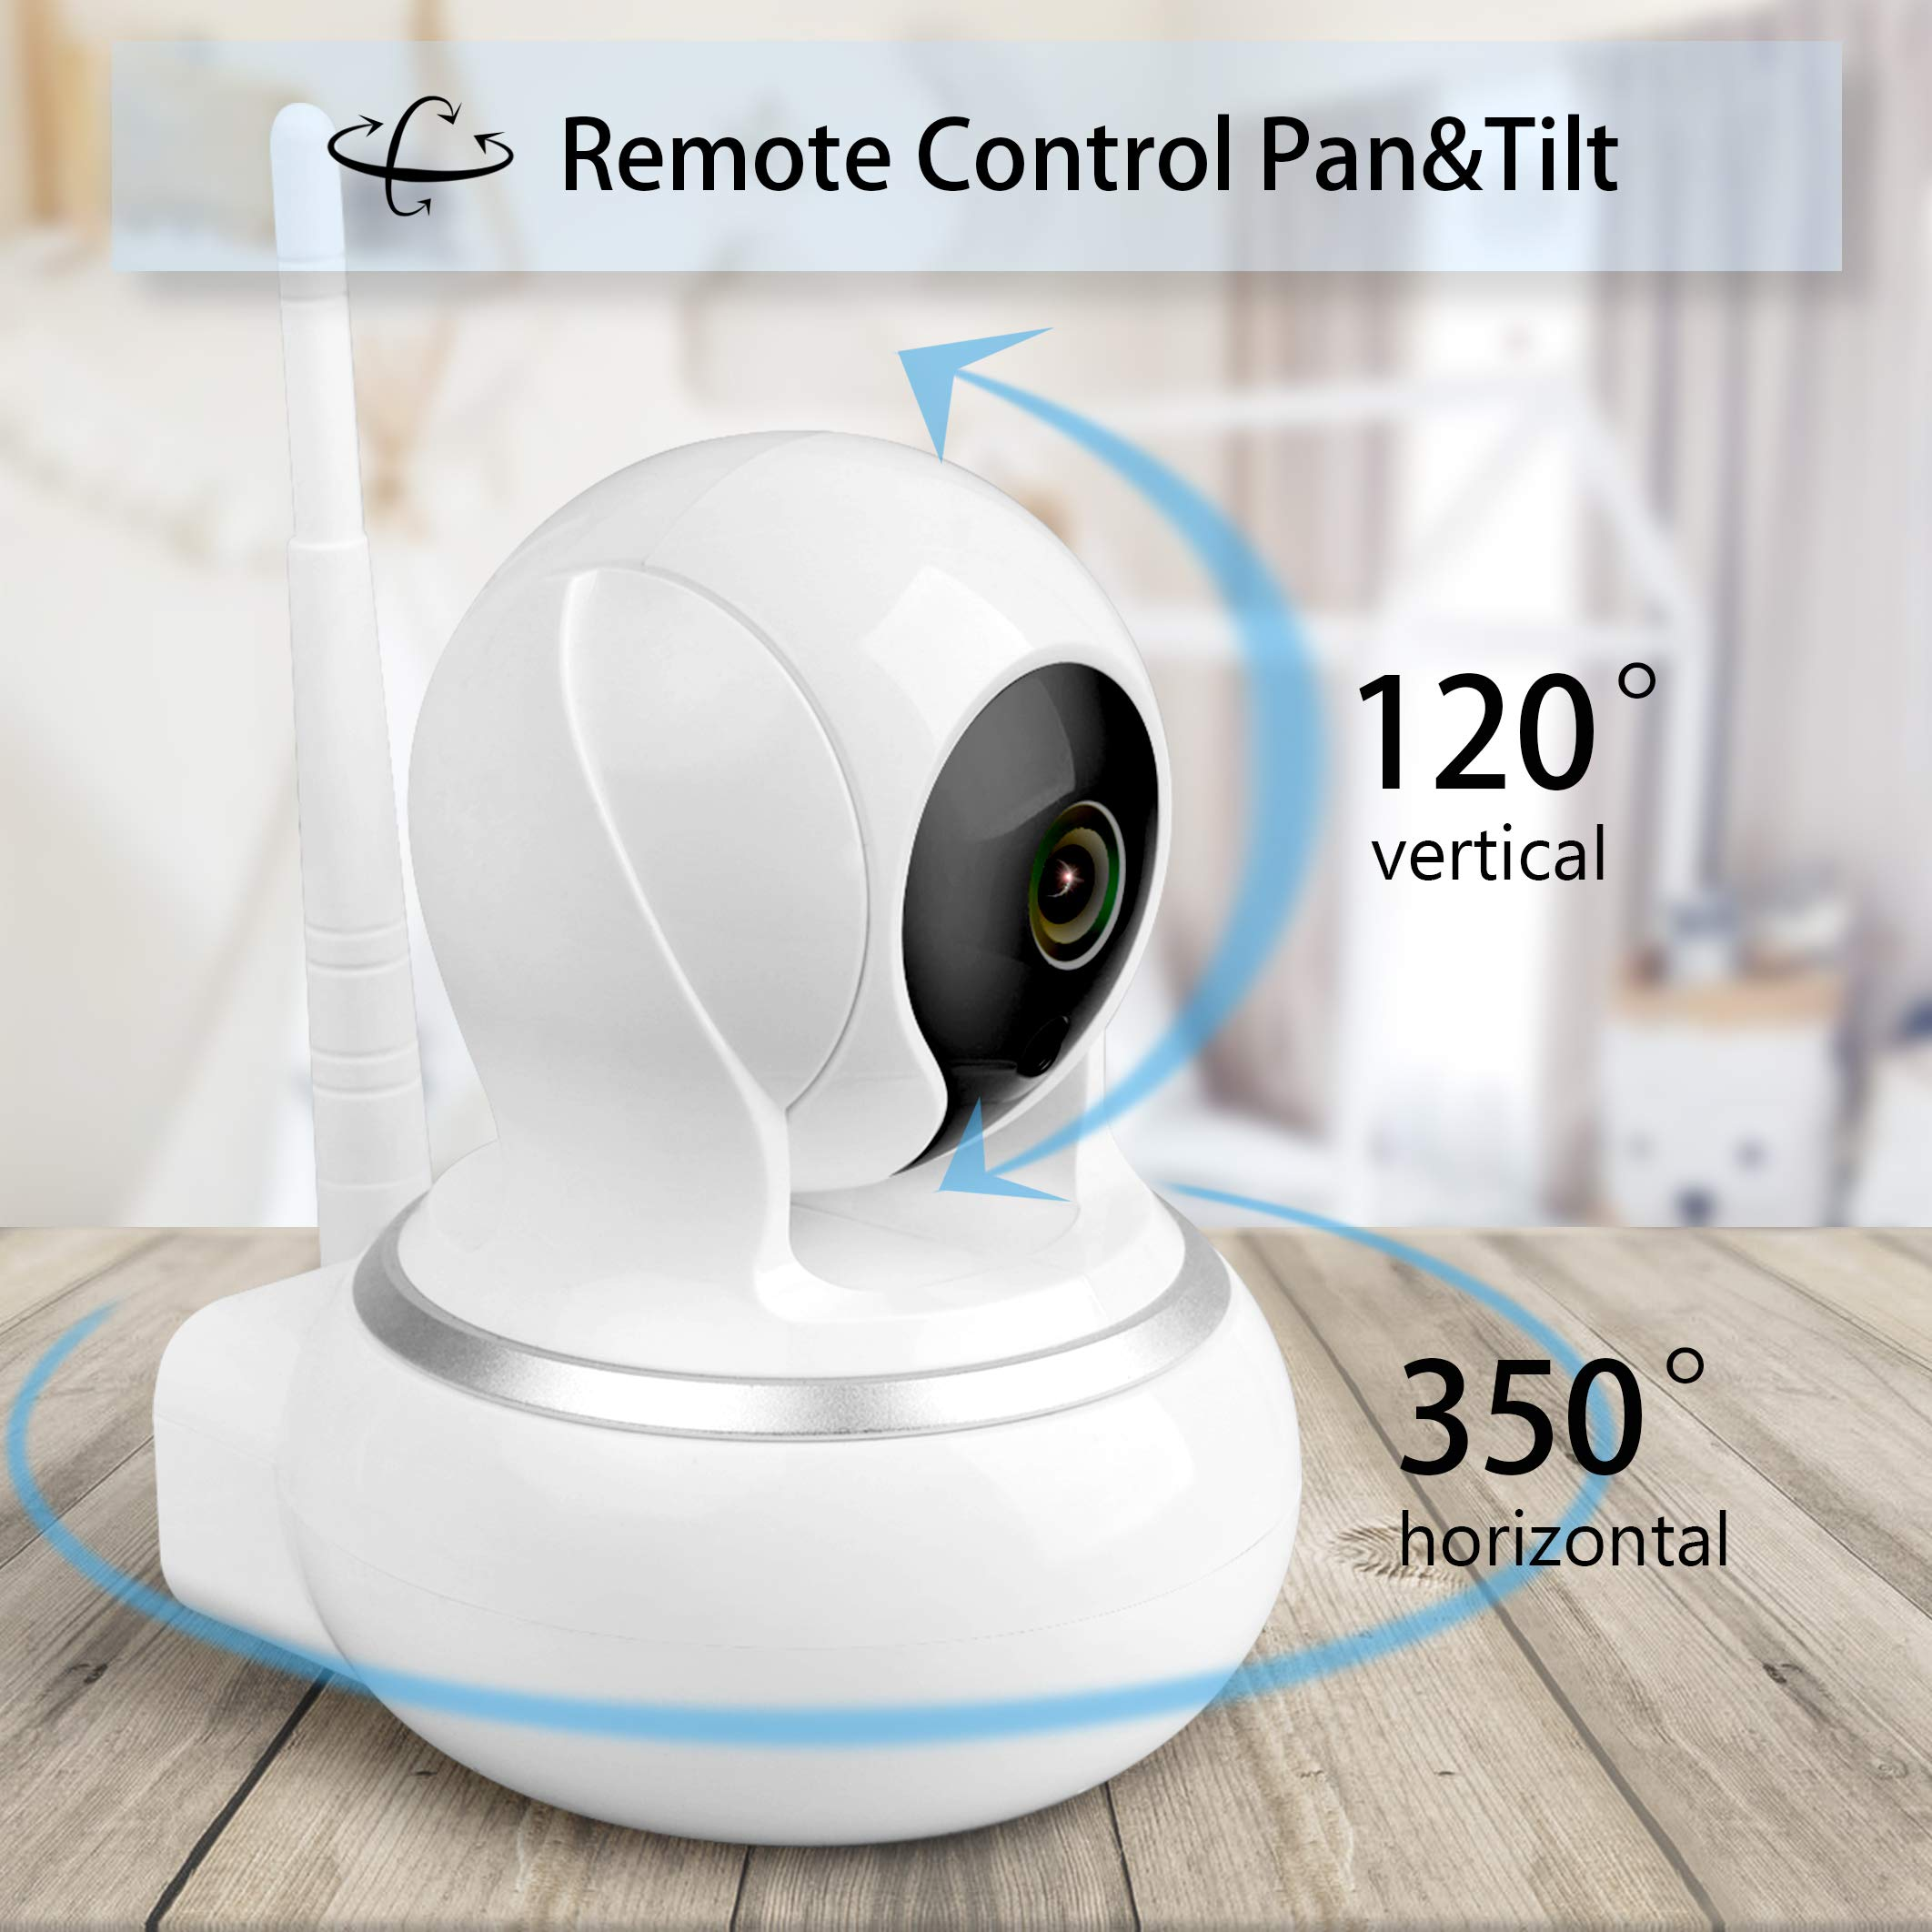 Samxic Video Baby Monitor with 720P Camera, 5 Inches Display, Crying & Temperature Alert, Two-Way Talk, No Glow Night Vision, Remote Pan & Tilt & Zoom, High Privacy Baby Monitor System by Samxic (Image #3)